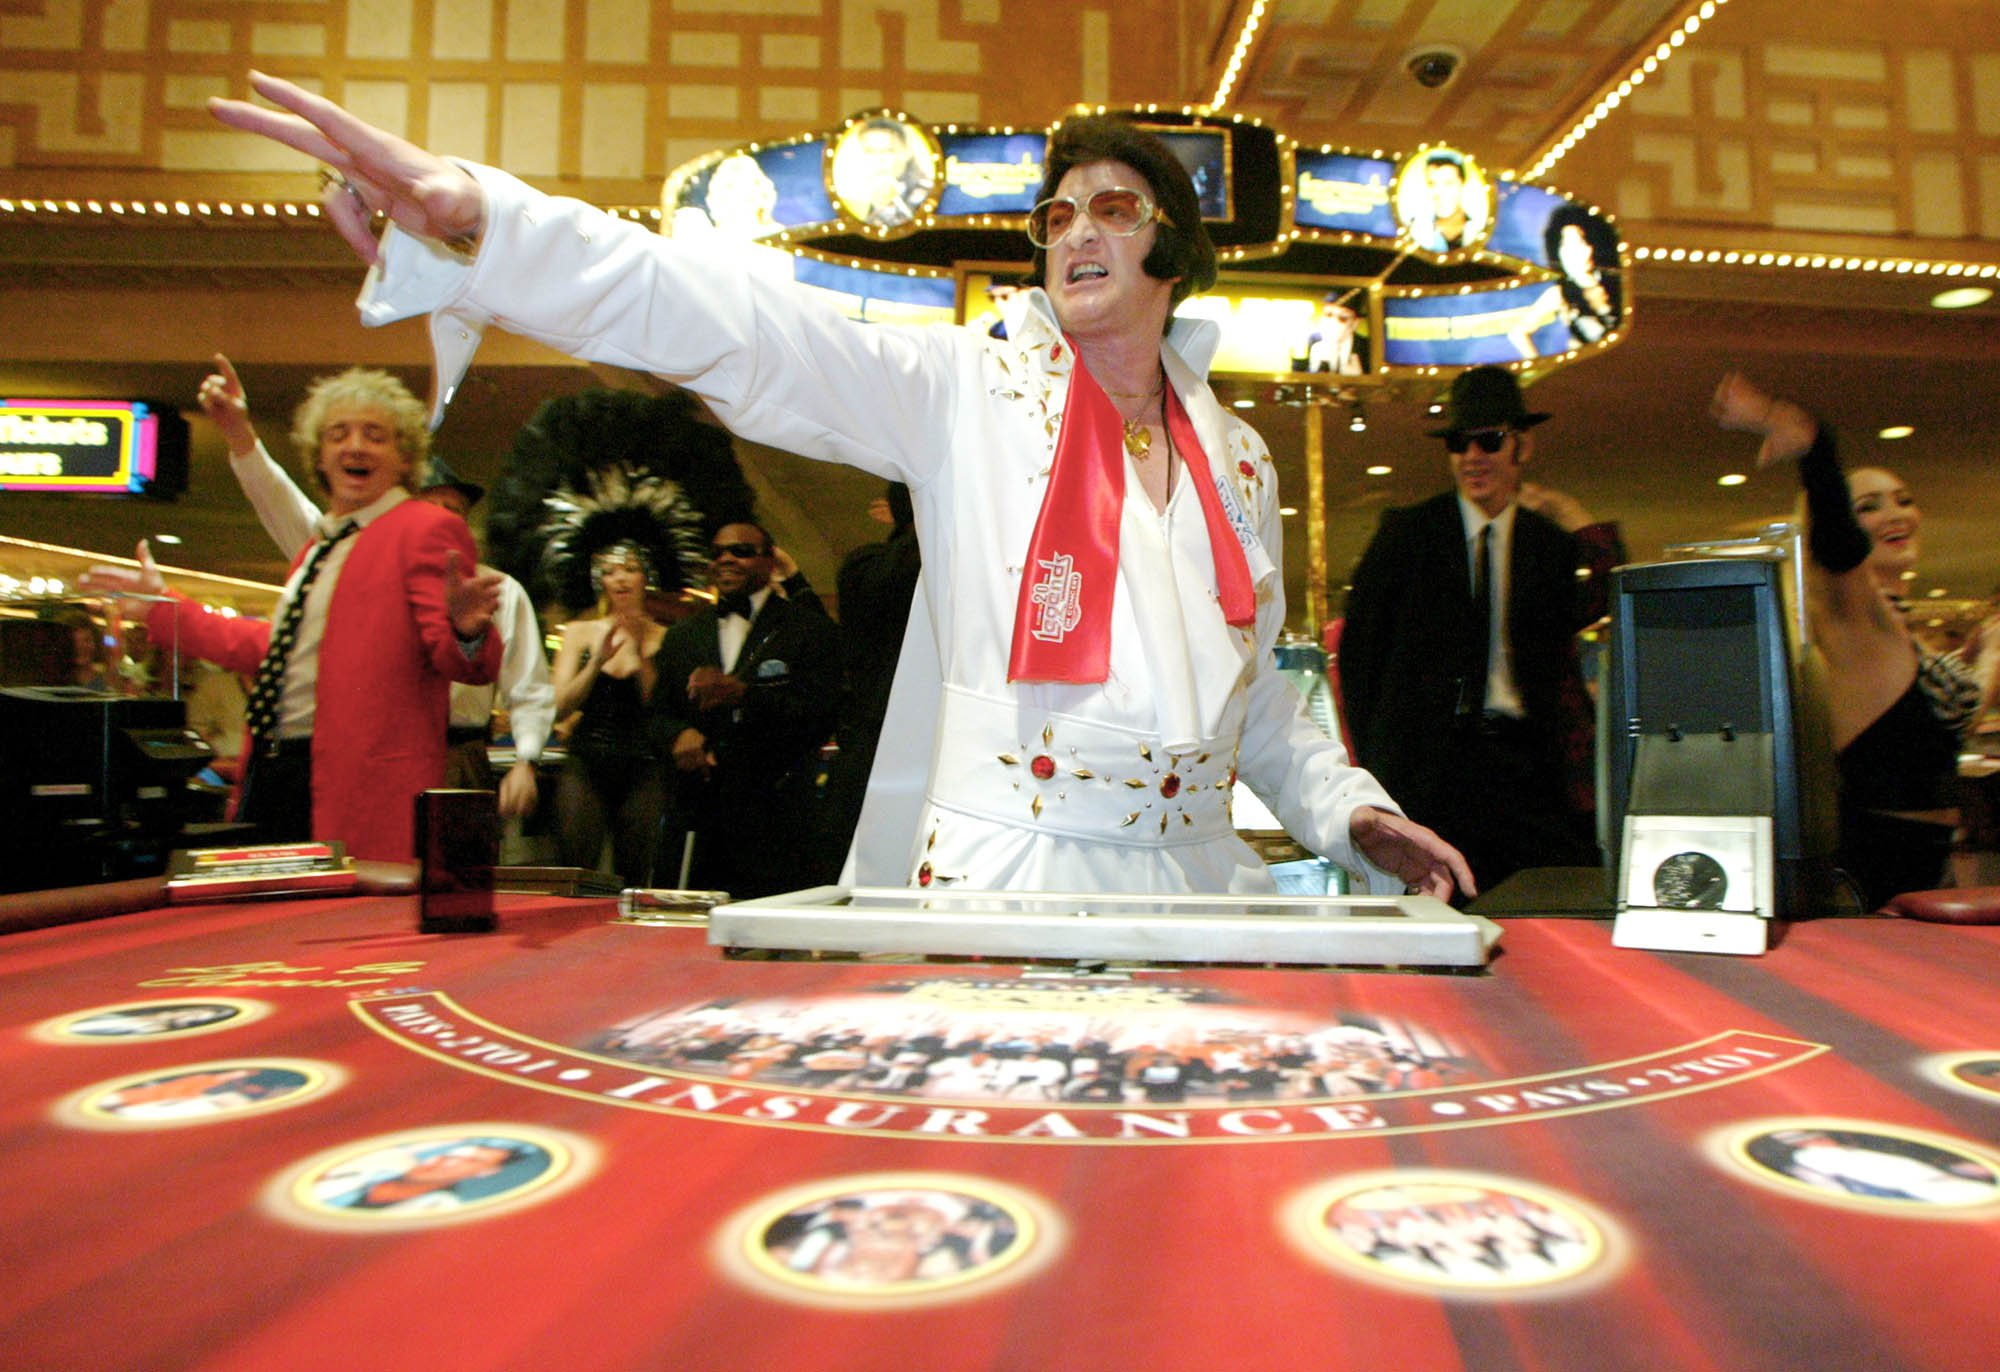 The Gambler And Hope For Making Money